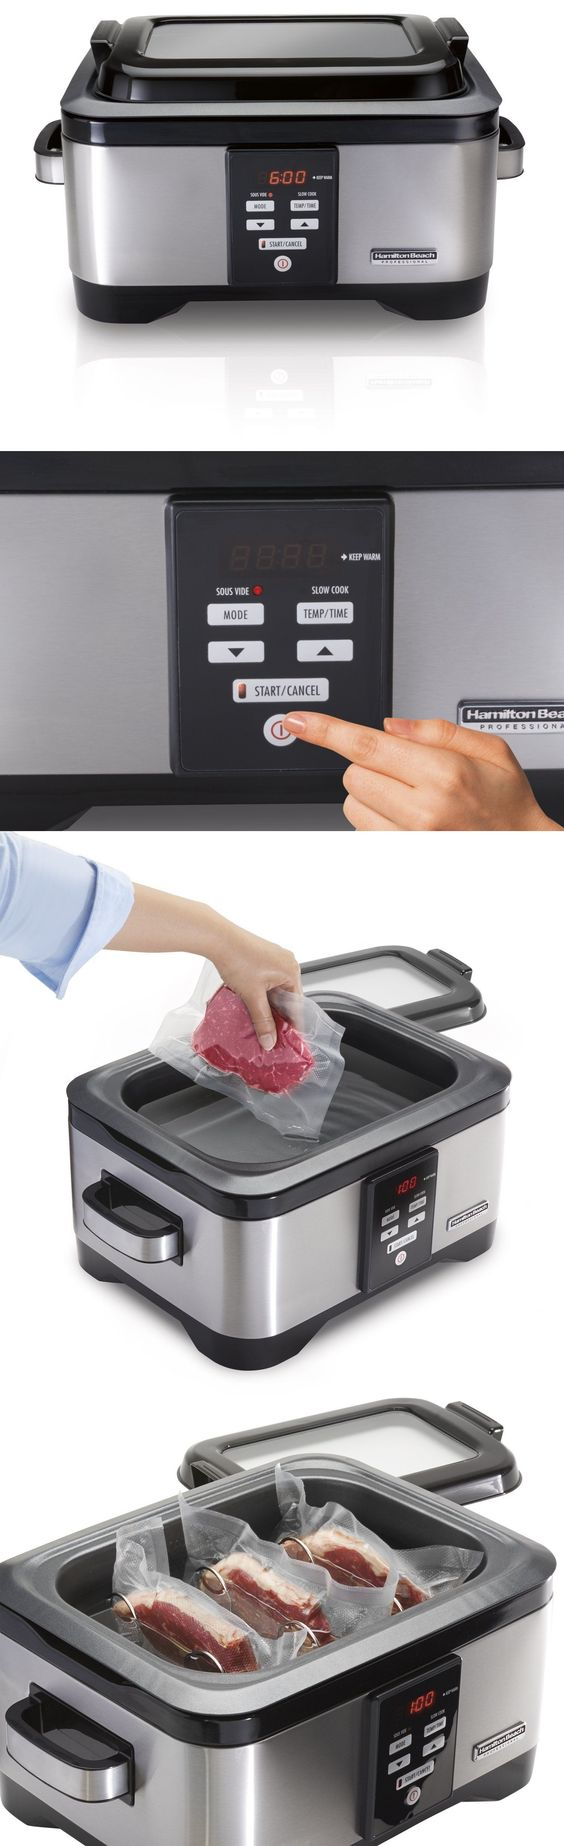 Uncategorized Hamilton Kitchen Appliances small kitchen appliances hamilton beach 33970 professional sous vide water oven and slow cooker 6